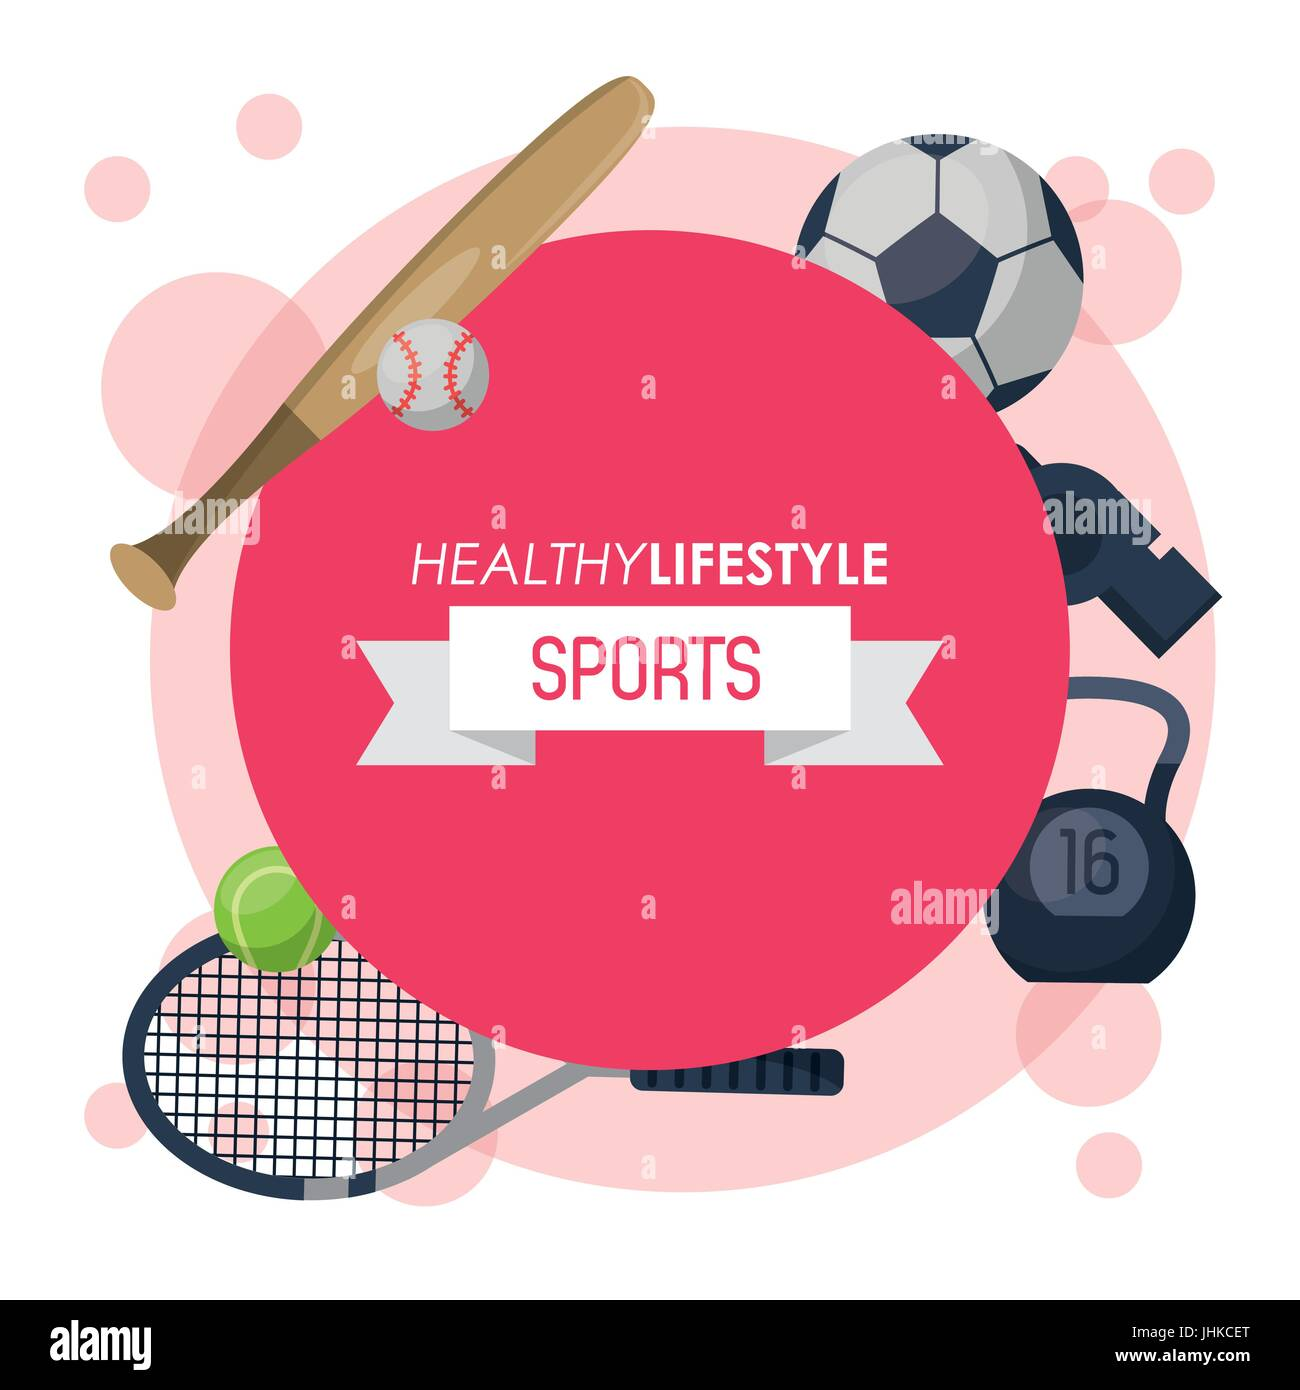 colorful poster of healthy lifestyle sports with round emblem magenta - Stock Image